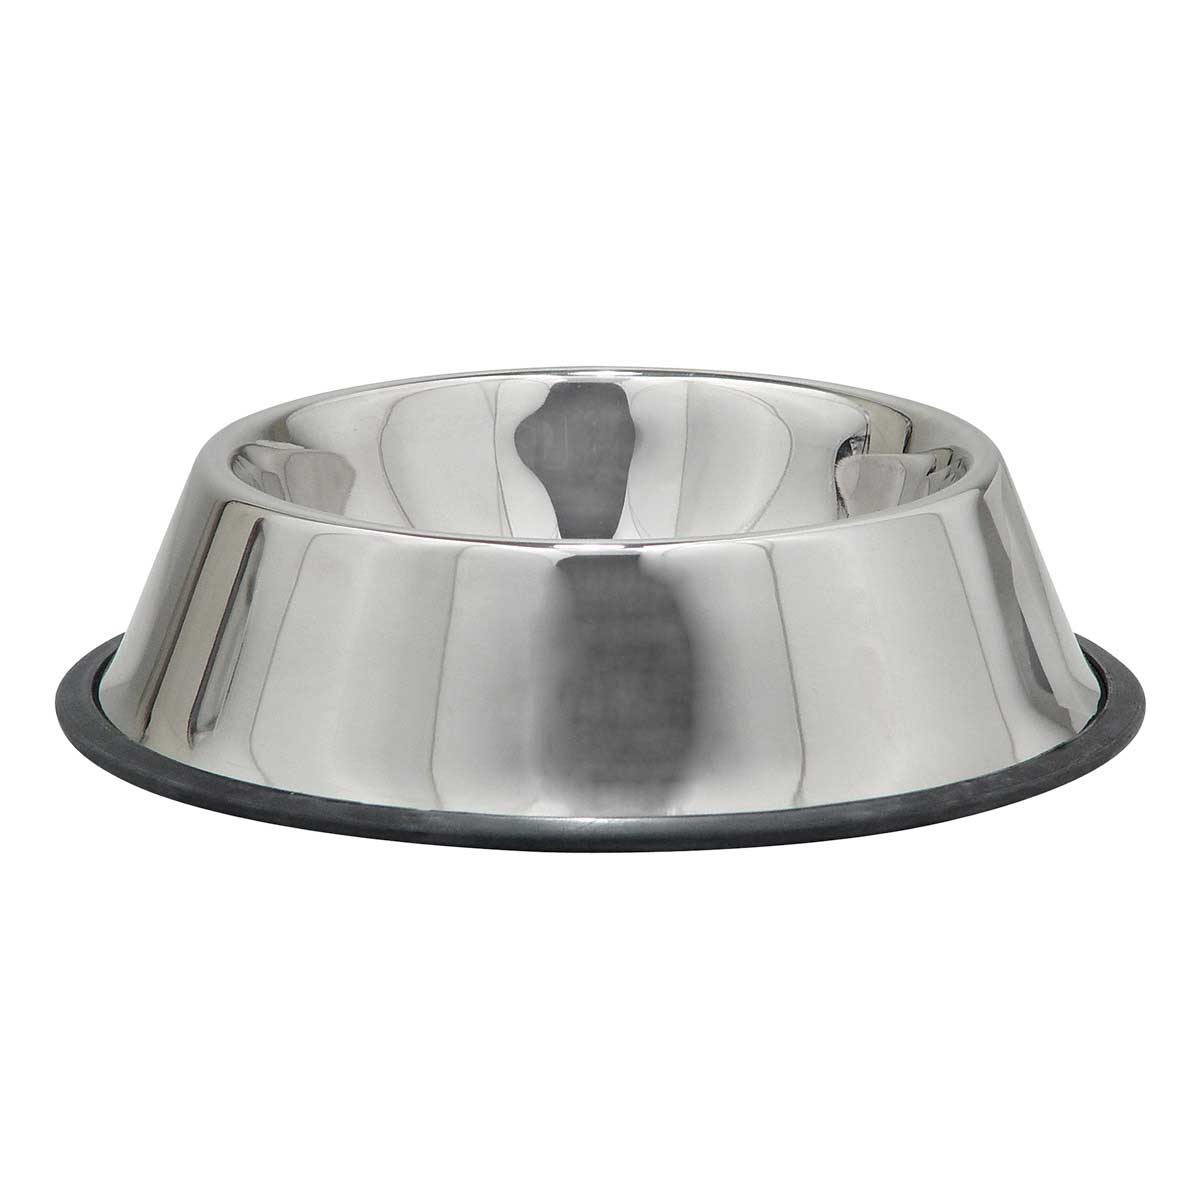 Indipets No-Tip Stainless Steel Pet Dish 16 oz